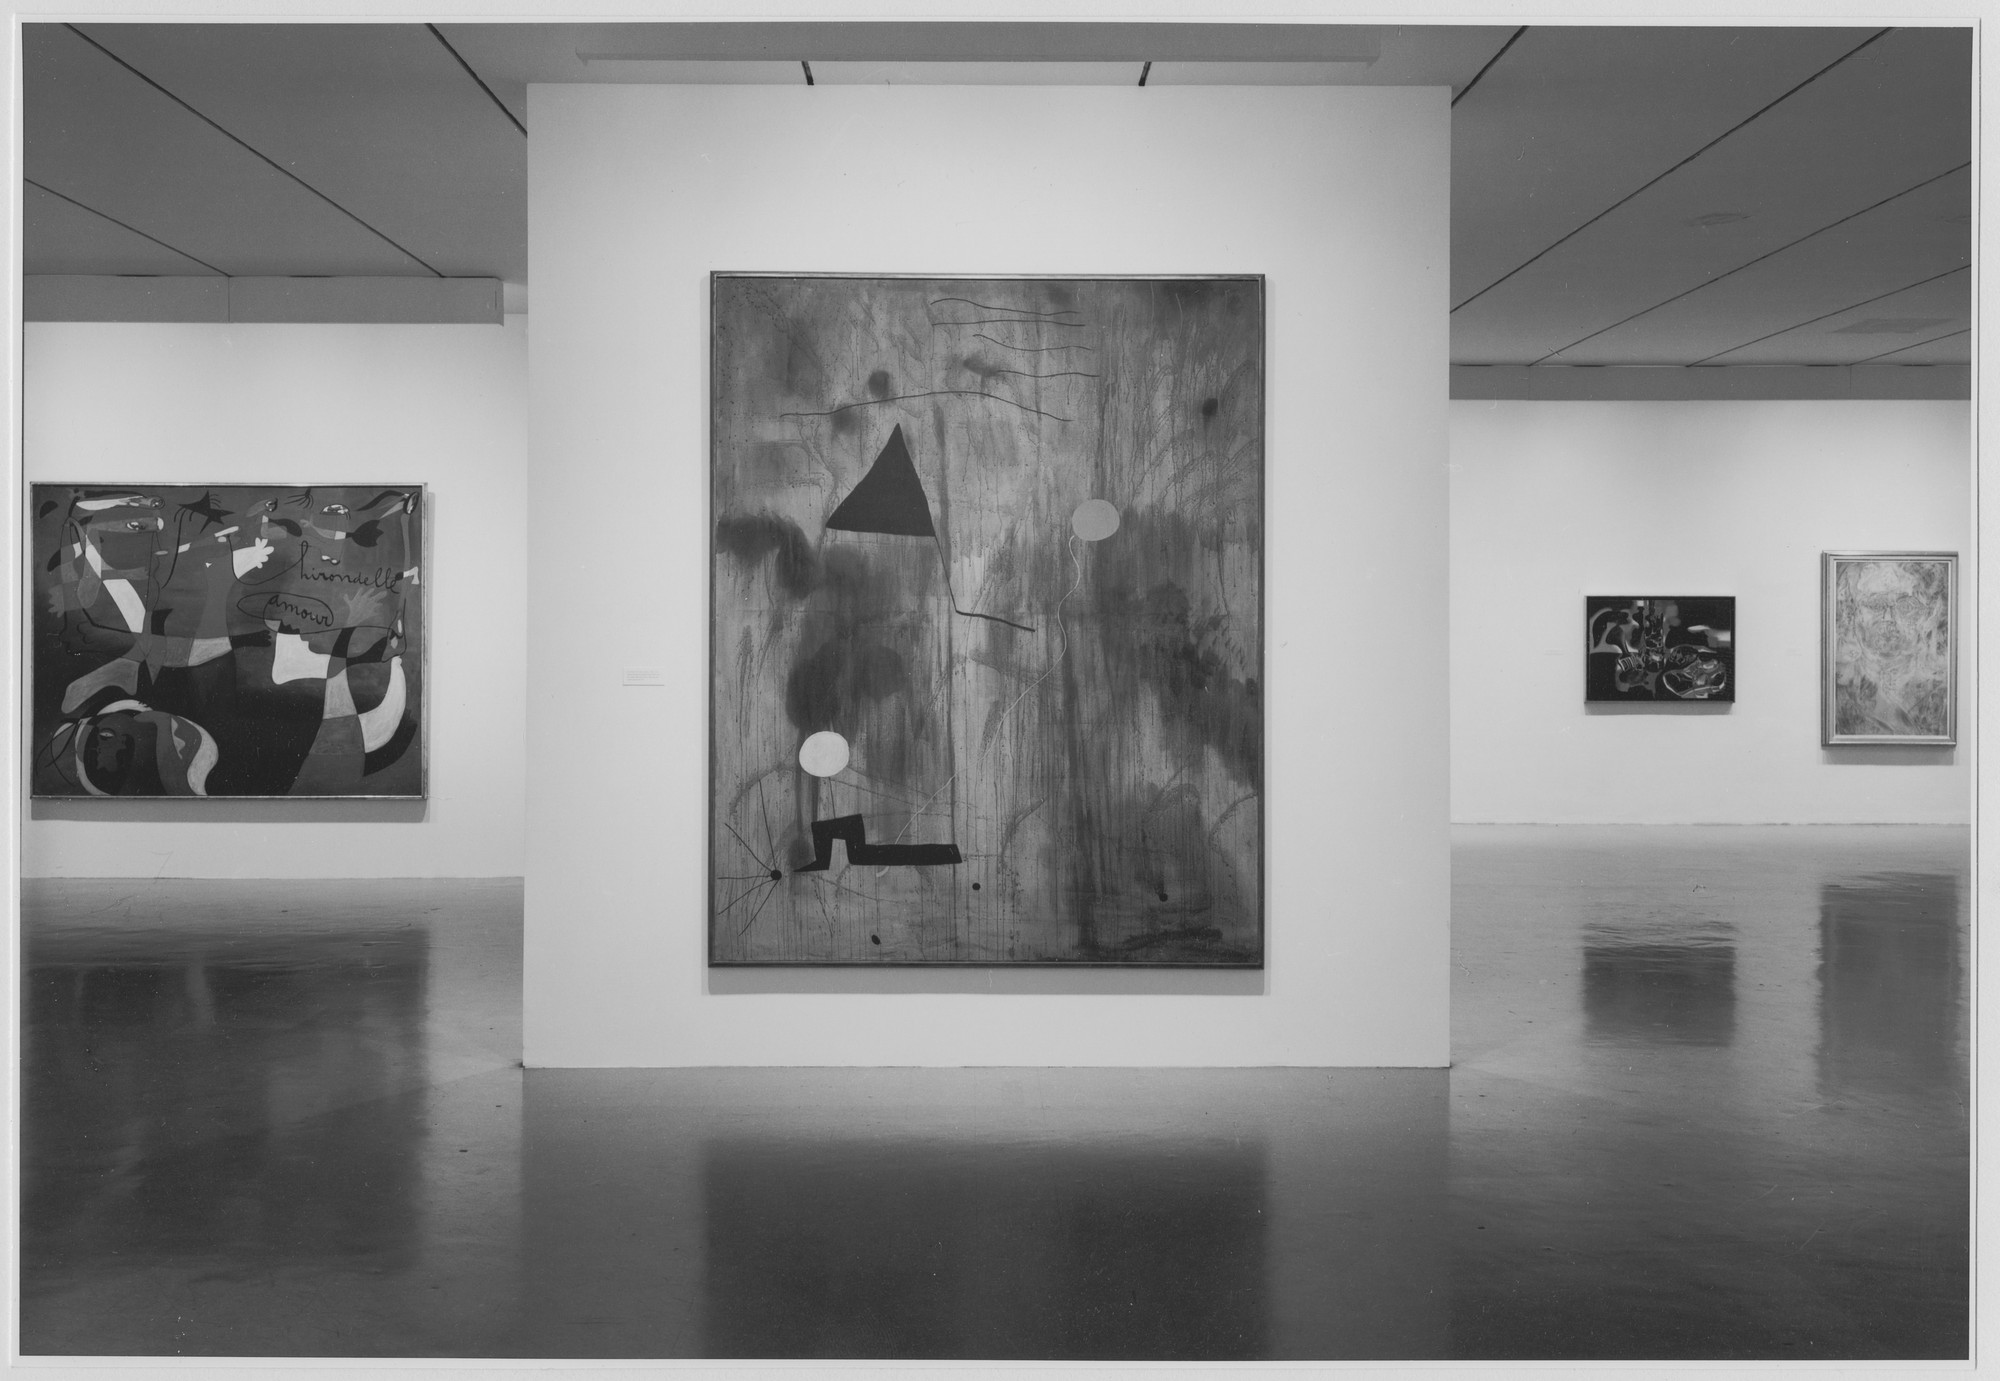 "Installation view of the exhibition, ""Miró in the Collection of the Museum of Modern Art."" October 9, 1973–January 27, 1974. Photographic Archive. The Museum of Modern Art Archives, New York. IN1044.1. Photograph by Robert Mates, Paul Katz."